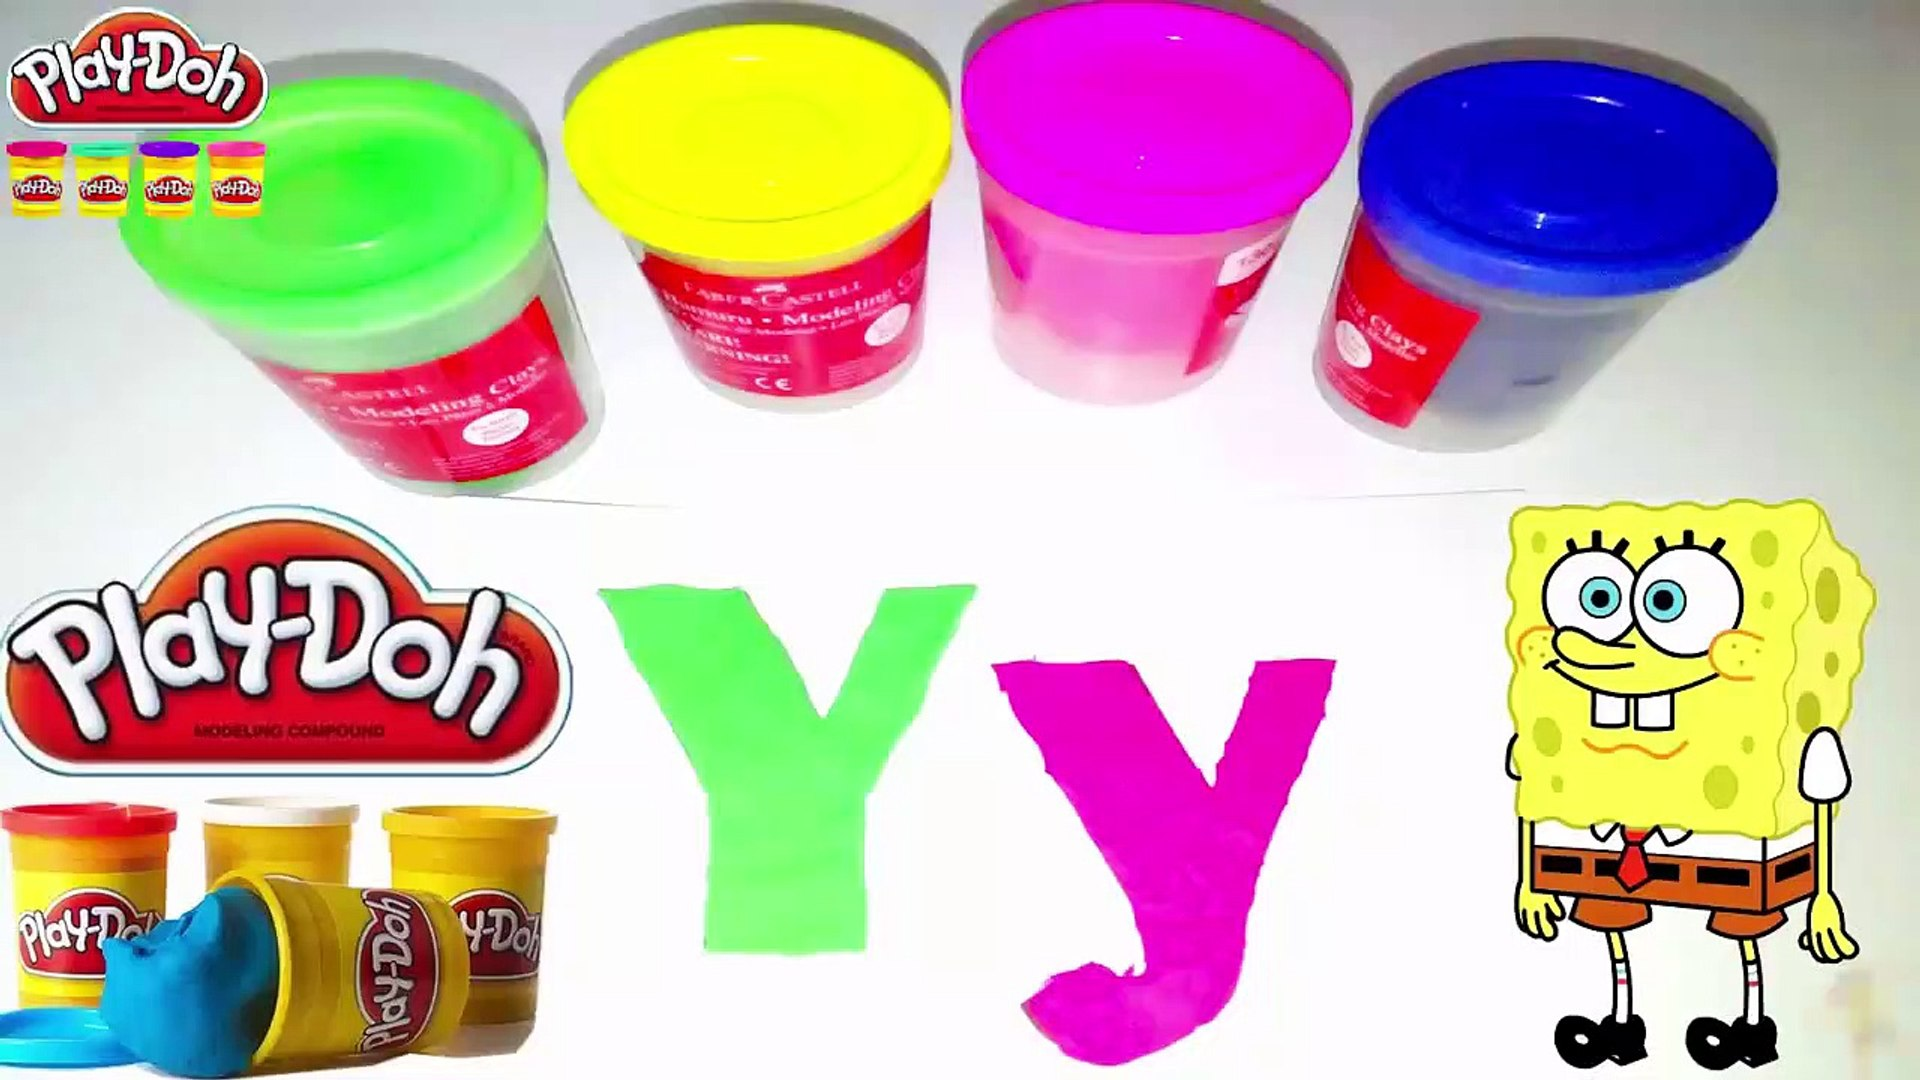 ABC Play Doh, Letters 'yphabert with Spo